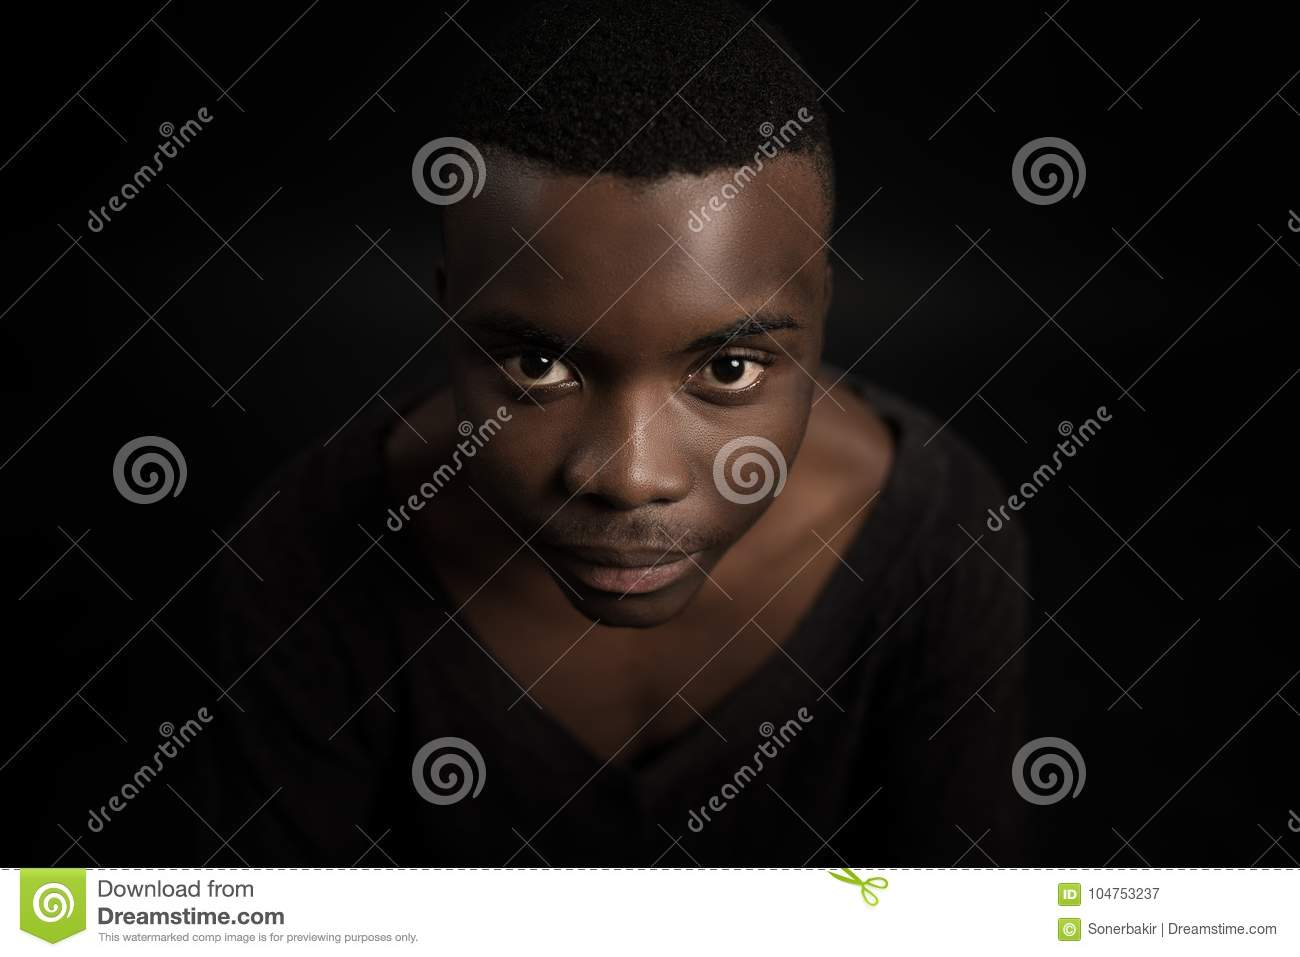 Headshot of serious confident young dark-skinned male standing isolated against black studiobackground.